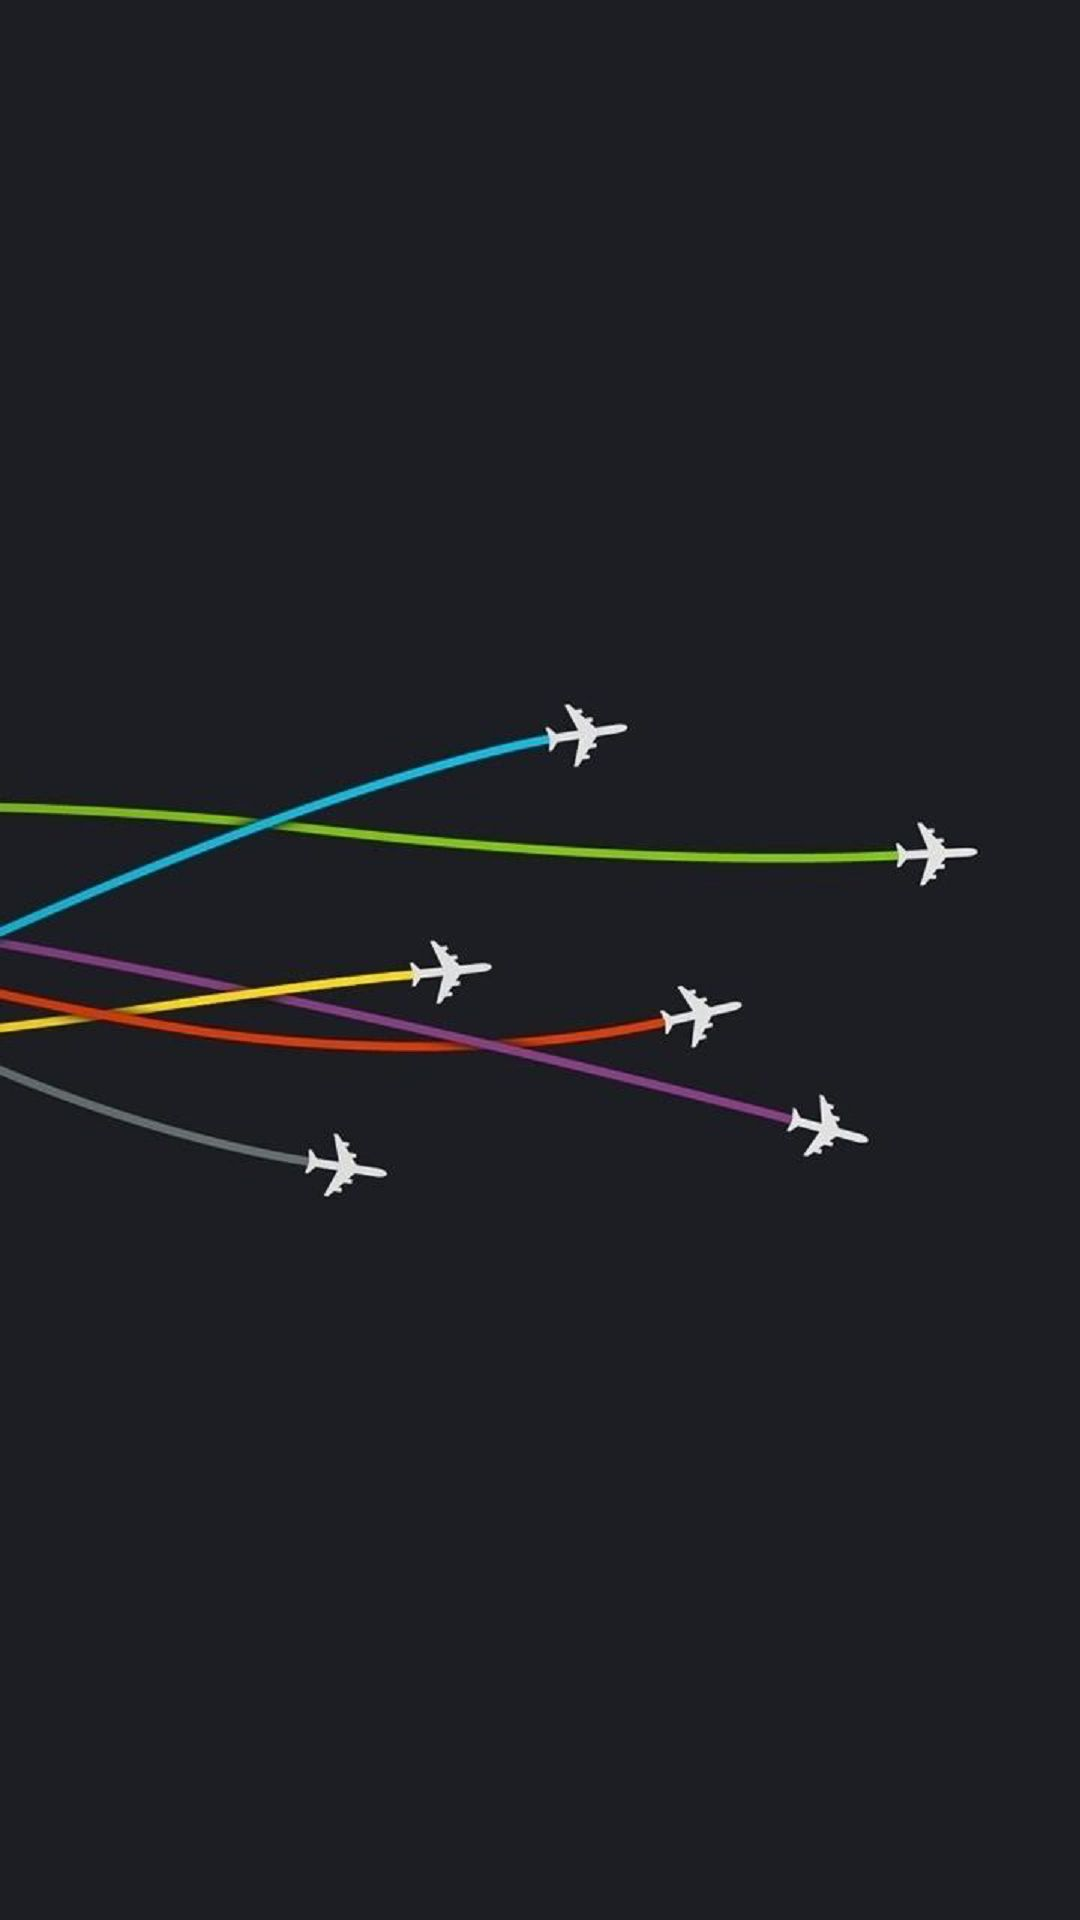 Wallpapers Airplanes Android Wallpaper Android Wallpapers